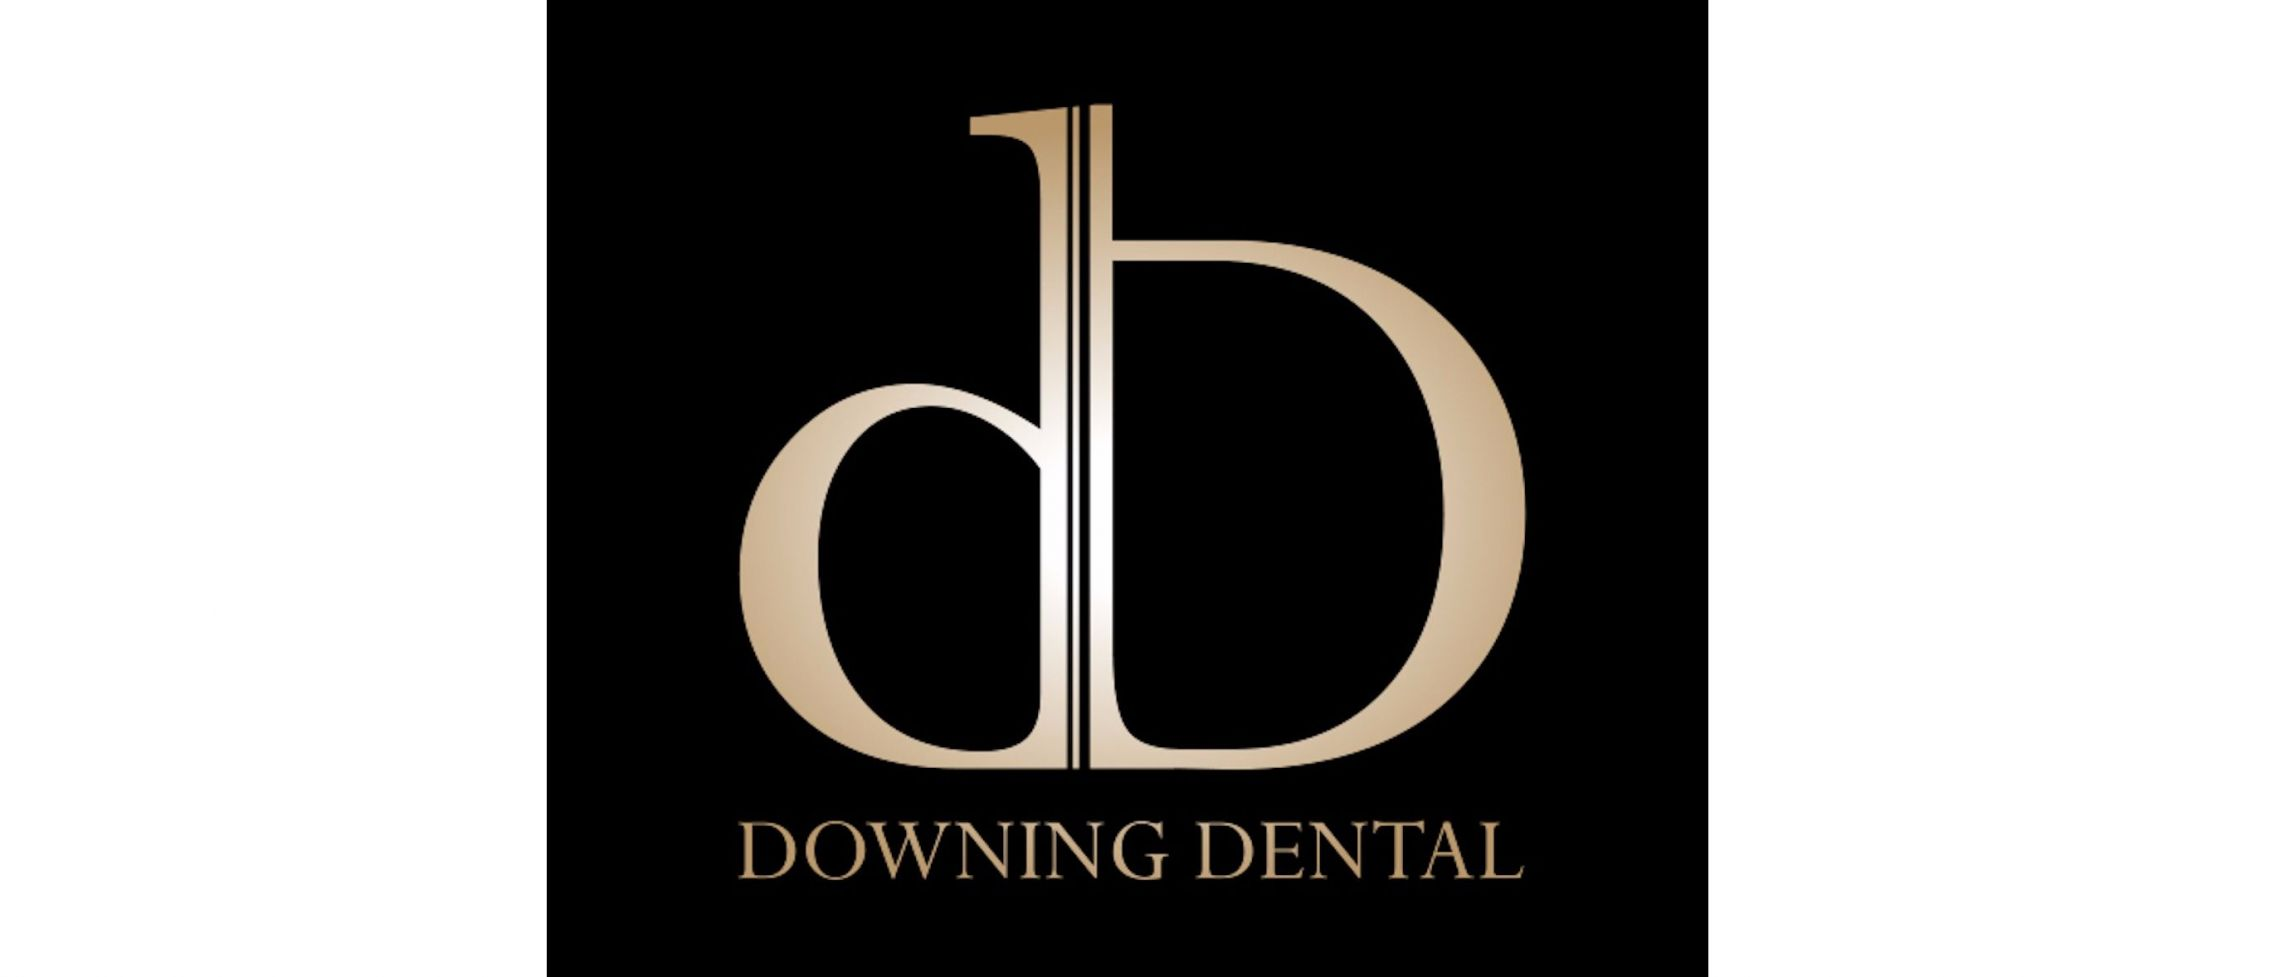 Downing Dental - The MiSmile Network